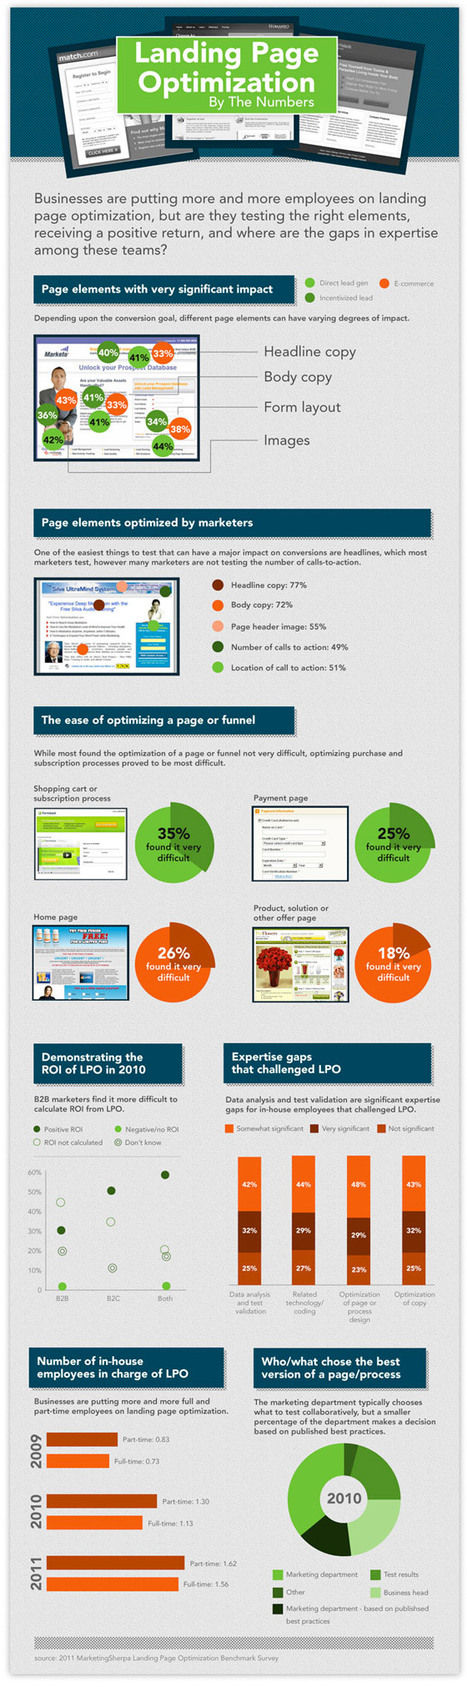 Landing Page Optimization by the Numbers [Infographic] | Unbounce | AtDotCom Social media | Scoop.it